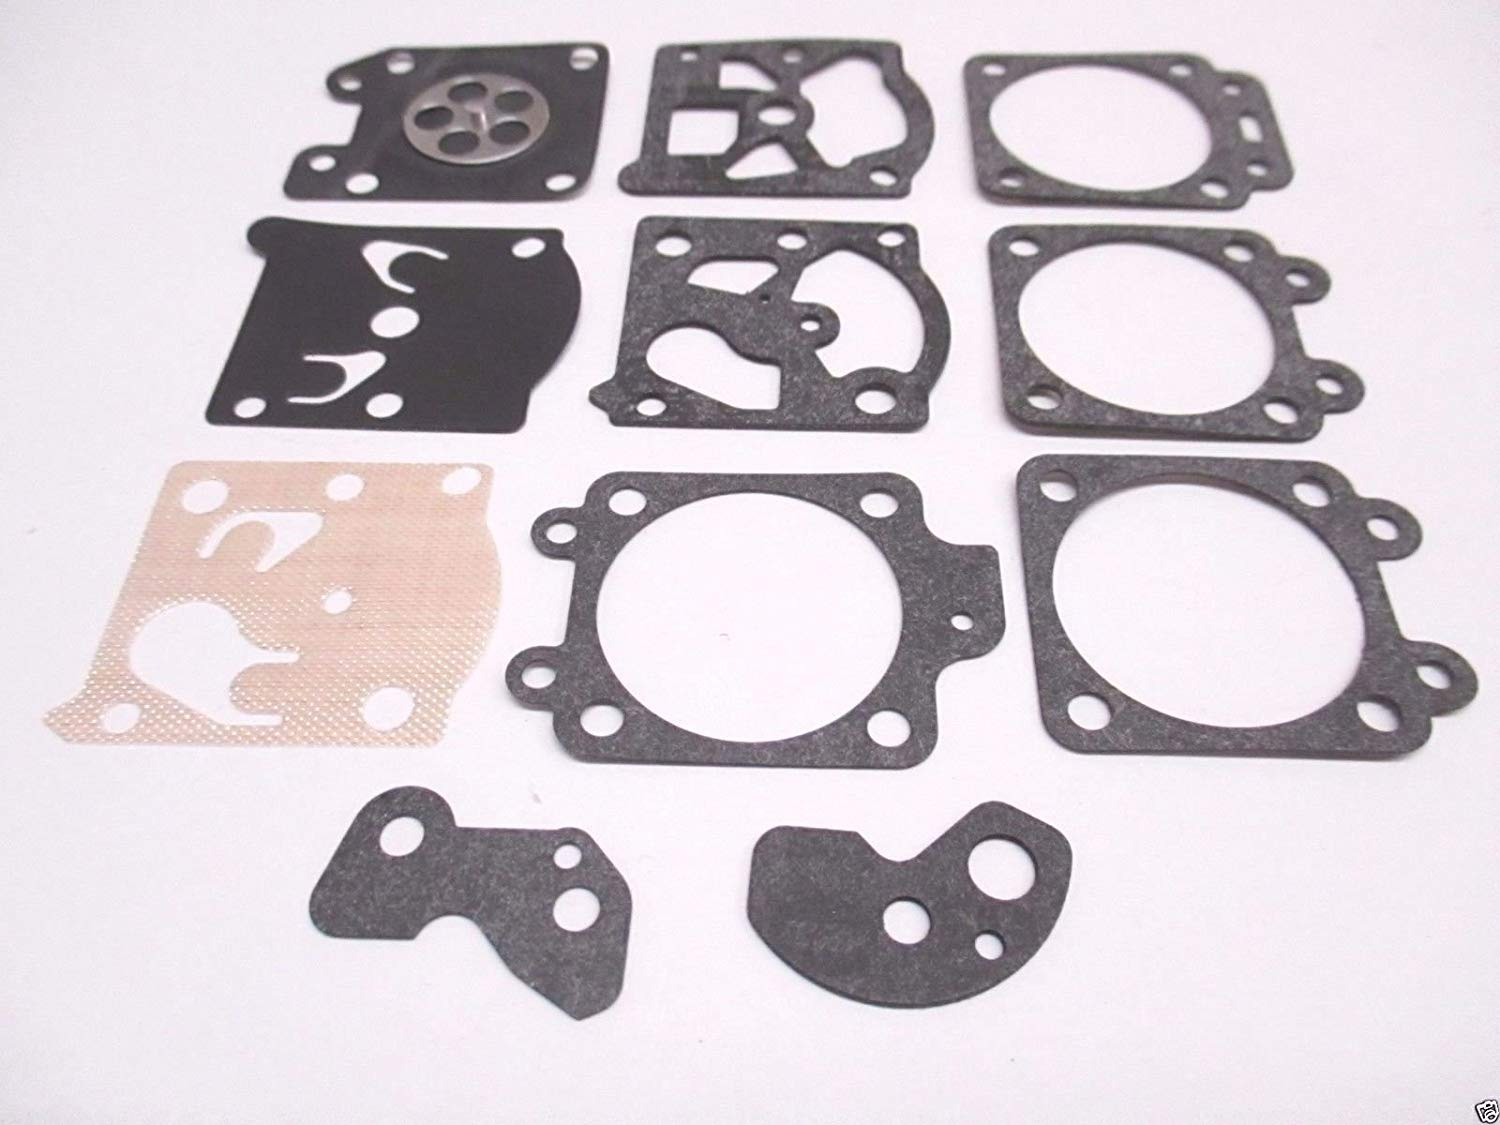 FLYMO HUSQVARNA CHAINSAW STRIMMER 530069844 CARBURETTOR GASKET D